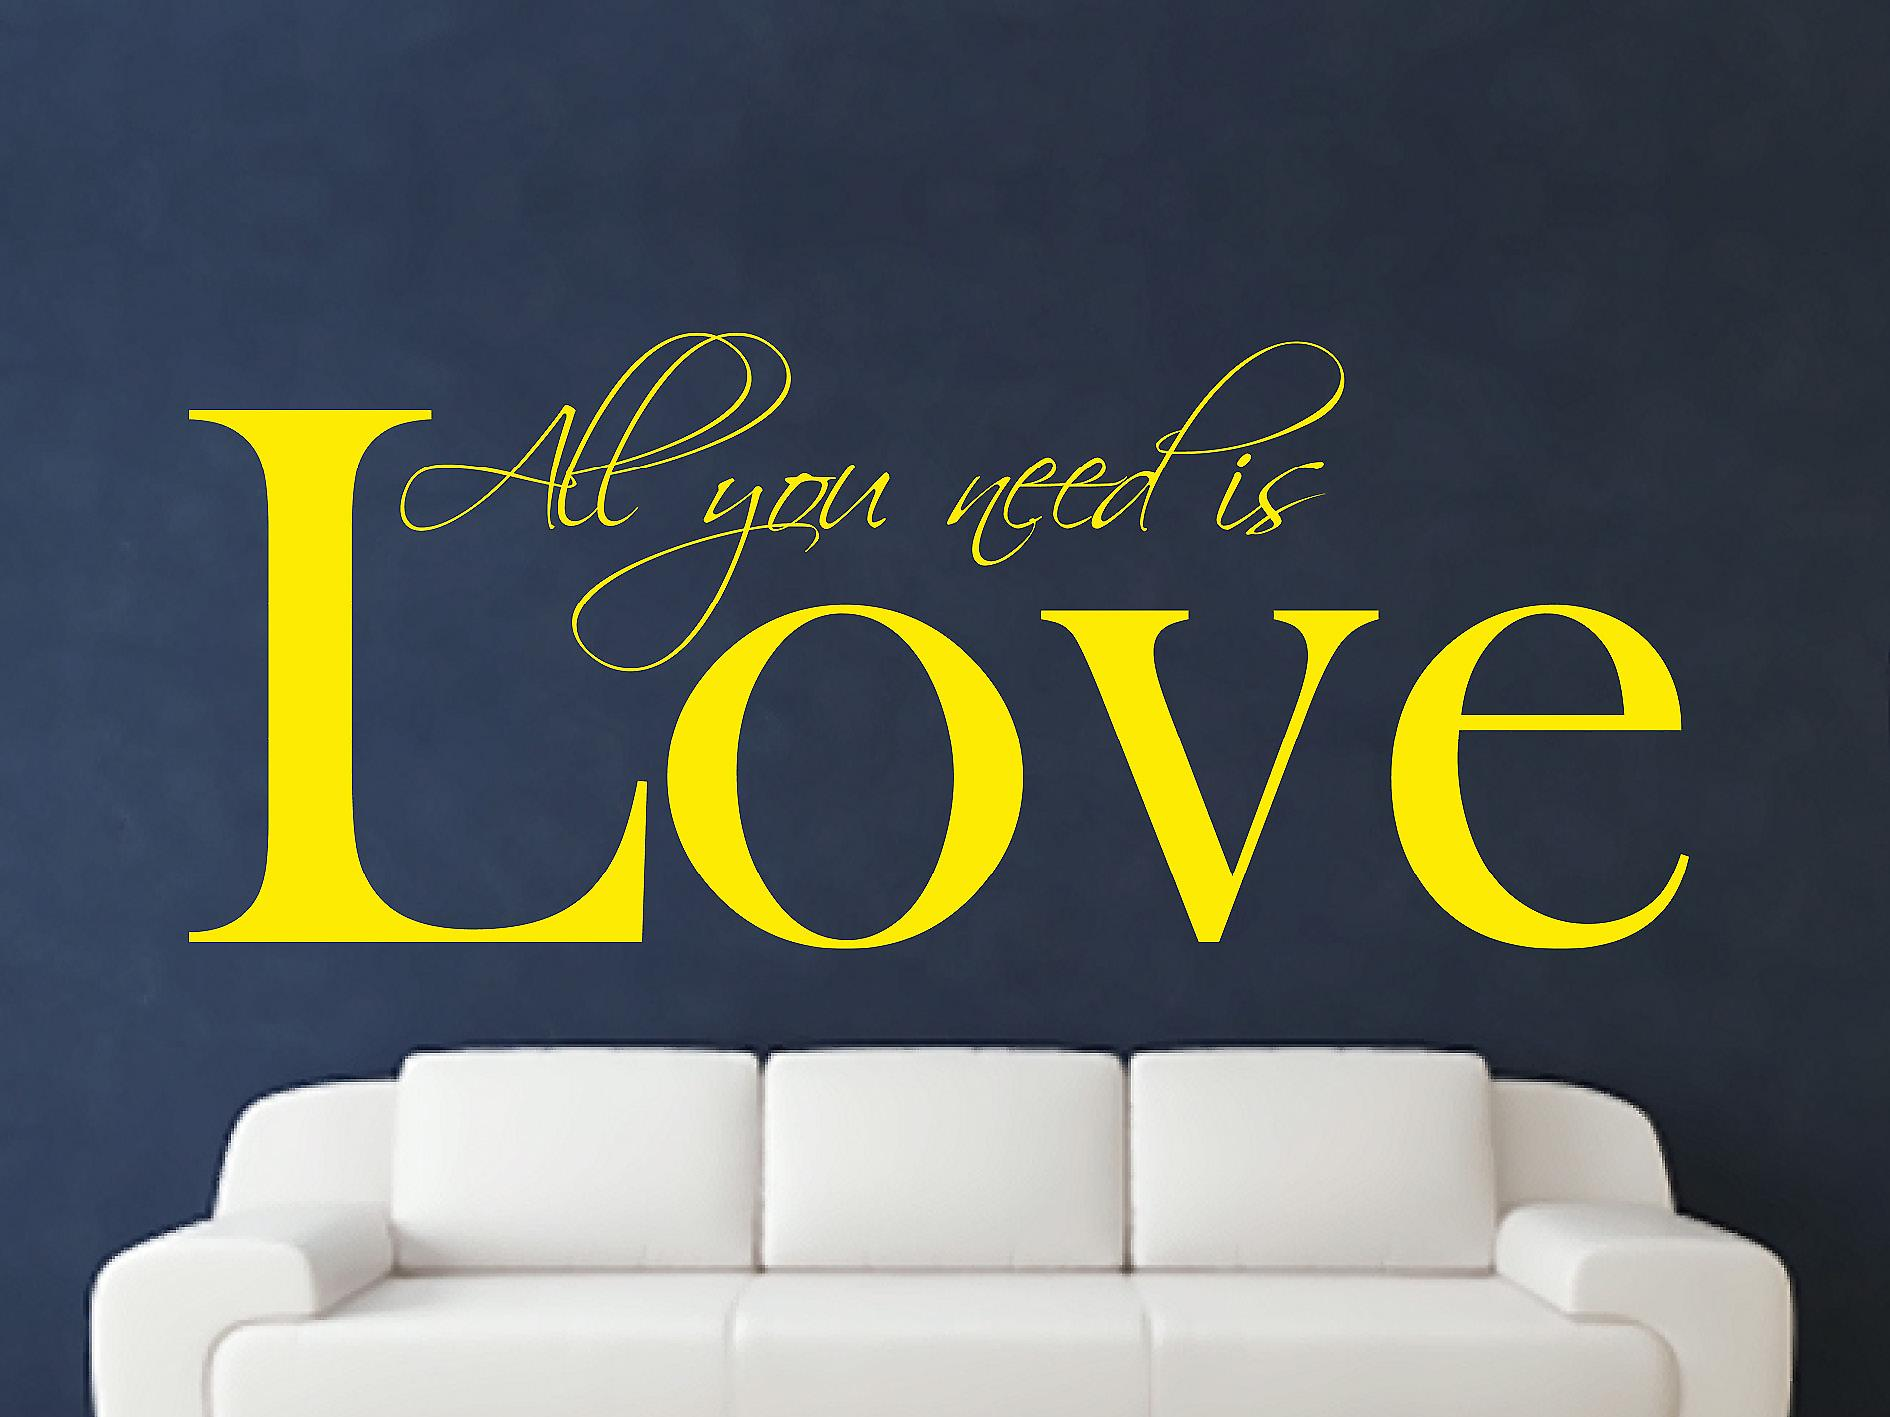 All You Need Wall Art Sticker - Bright Yellow